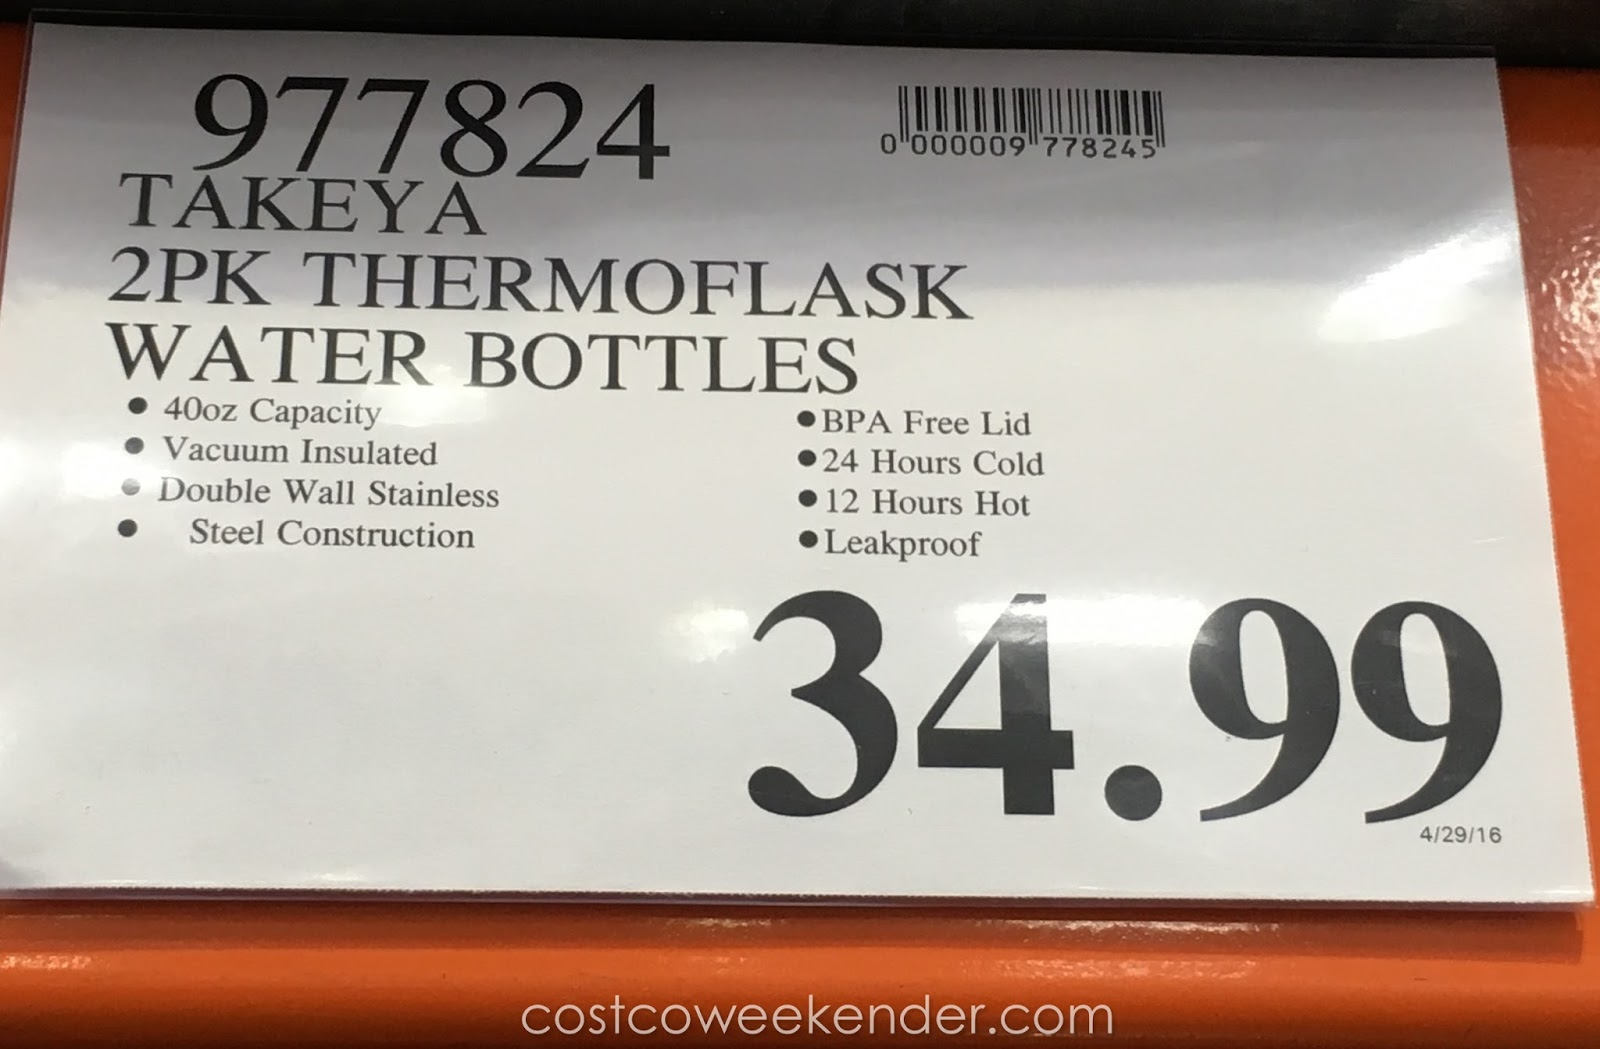 Deal for the Takeya ThermoFlask Water Bottle (2 pack) at Costco